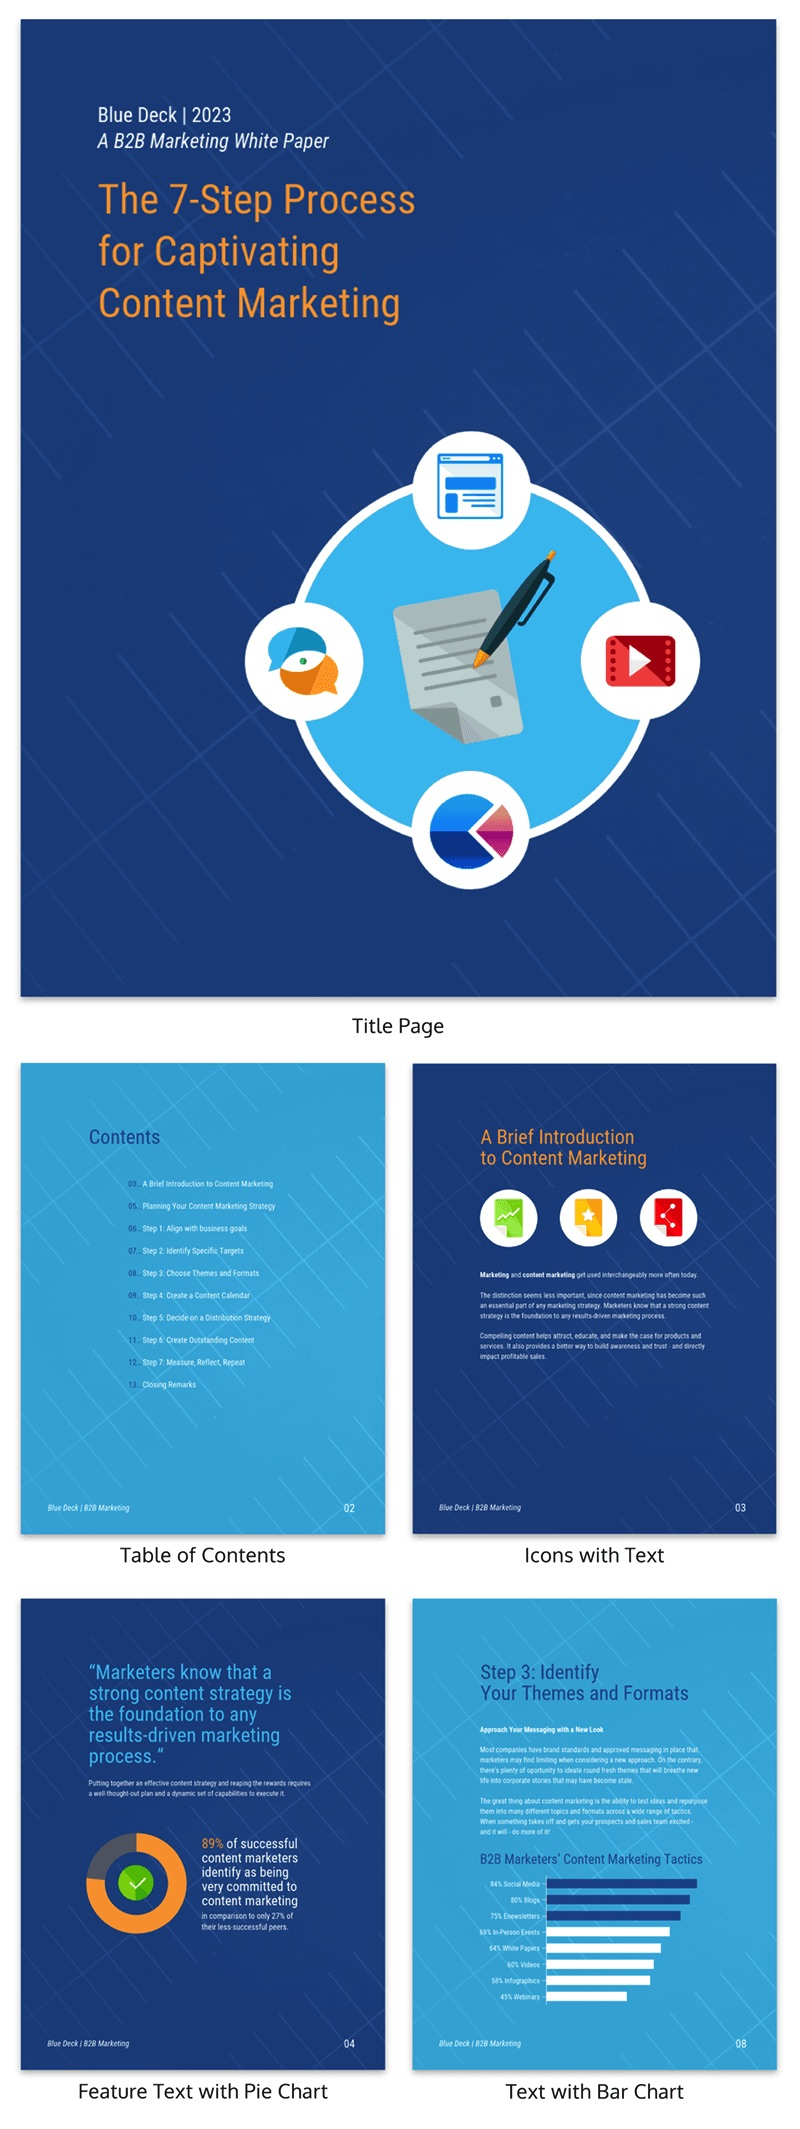 30+ Business Report Templates That Every Business Needs [+ Design